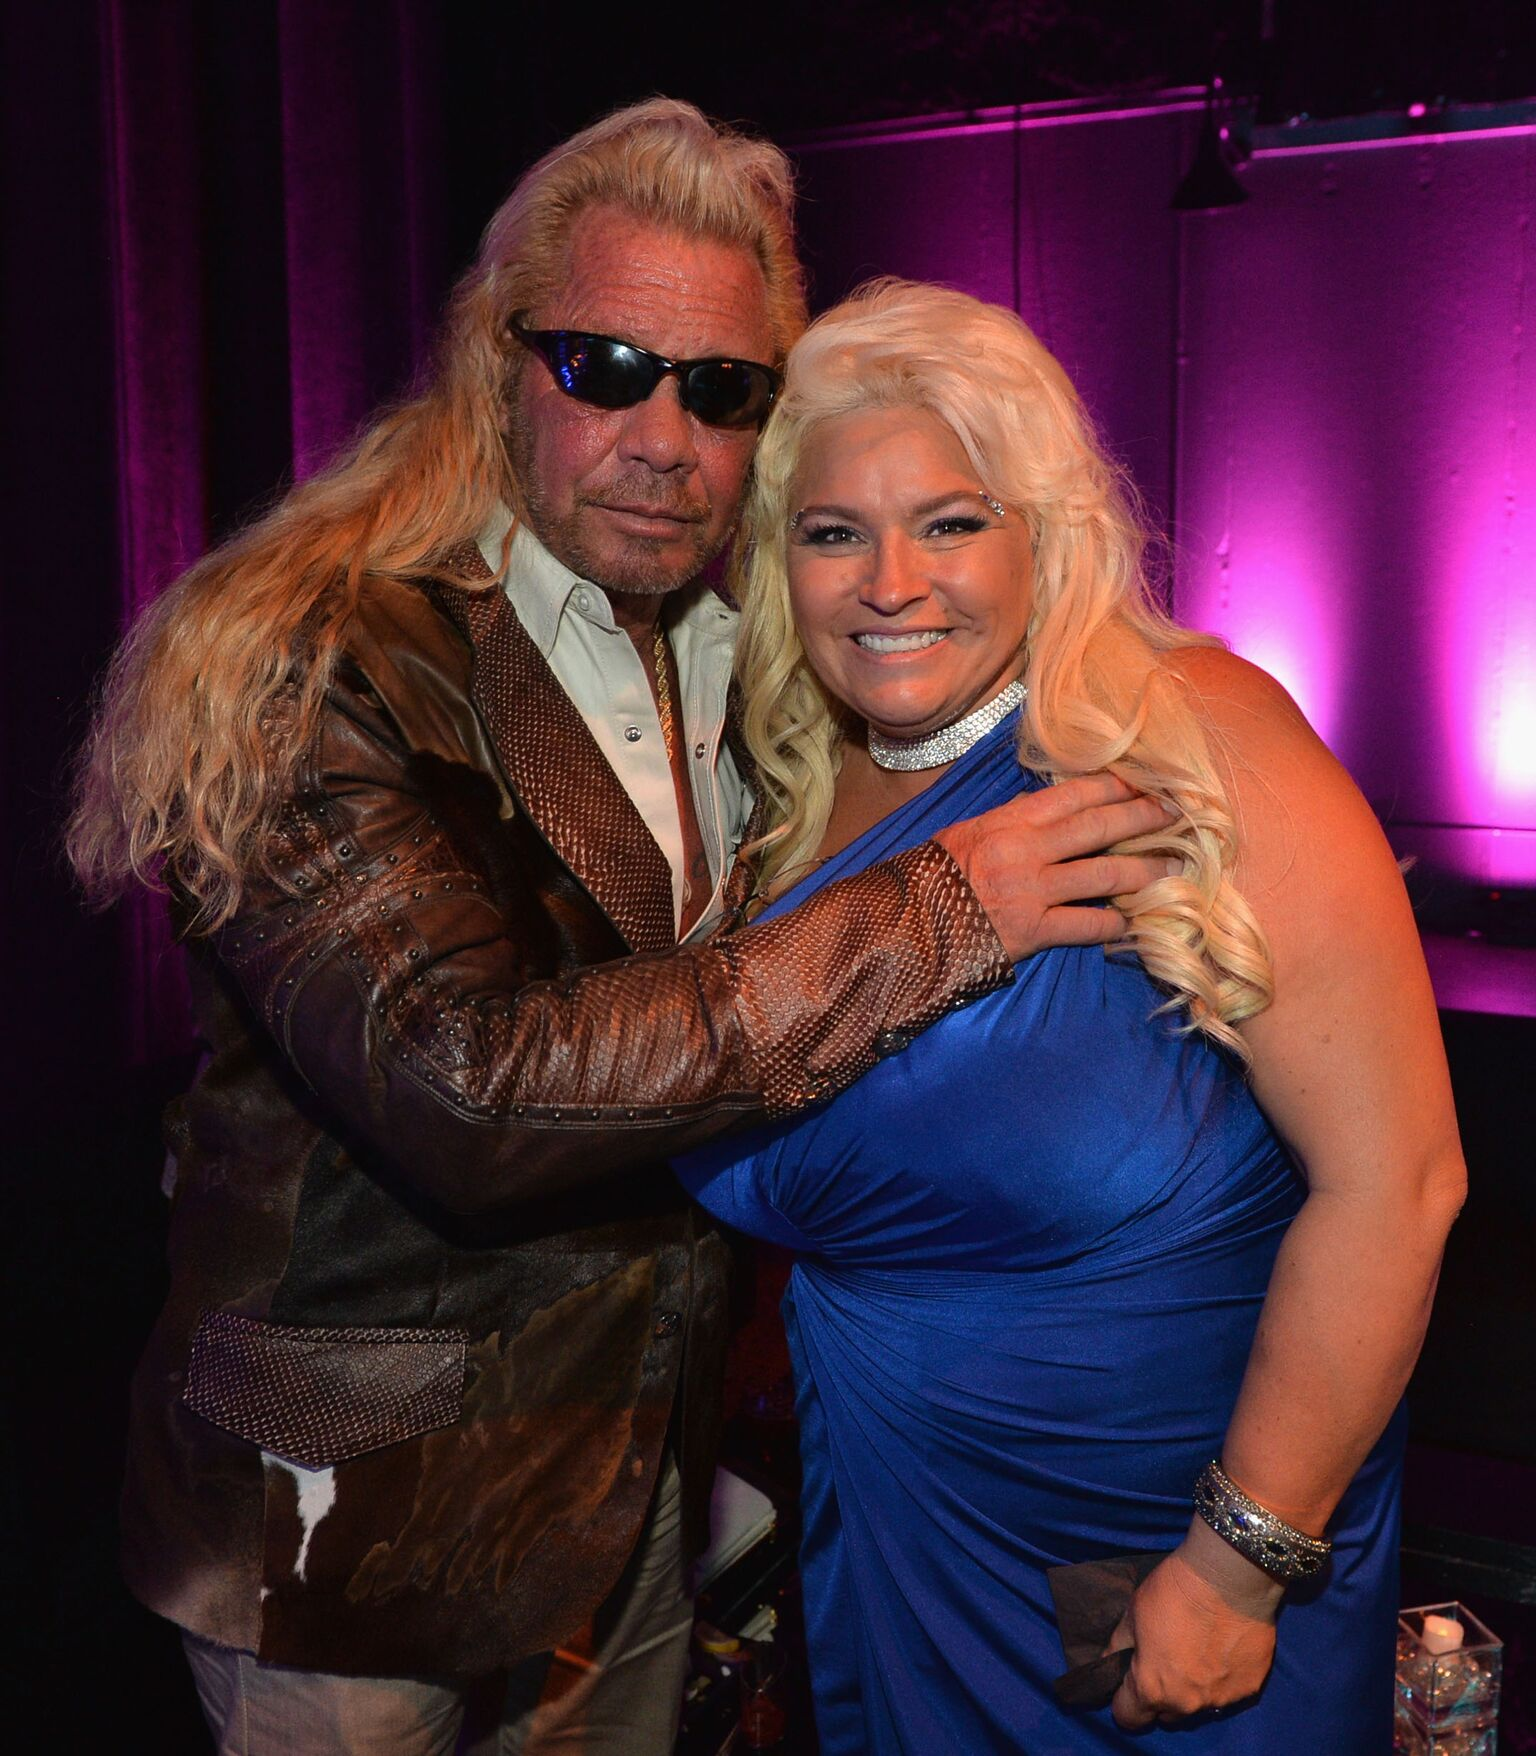 Duane Dog Lee Chapman and Beth Chapman at the 2013 CMT Music Awards | Getty Images